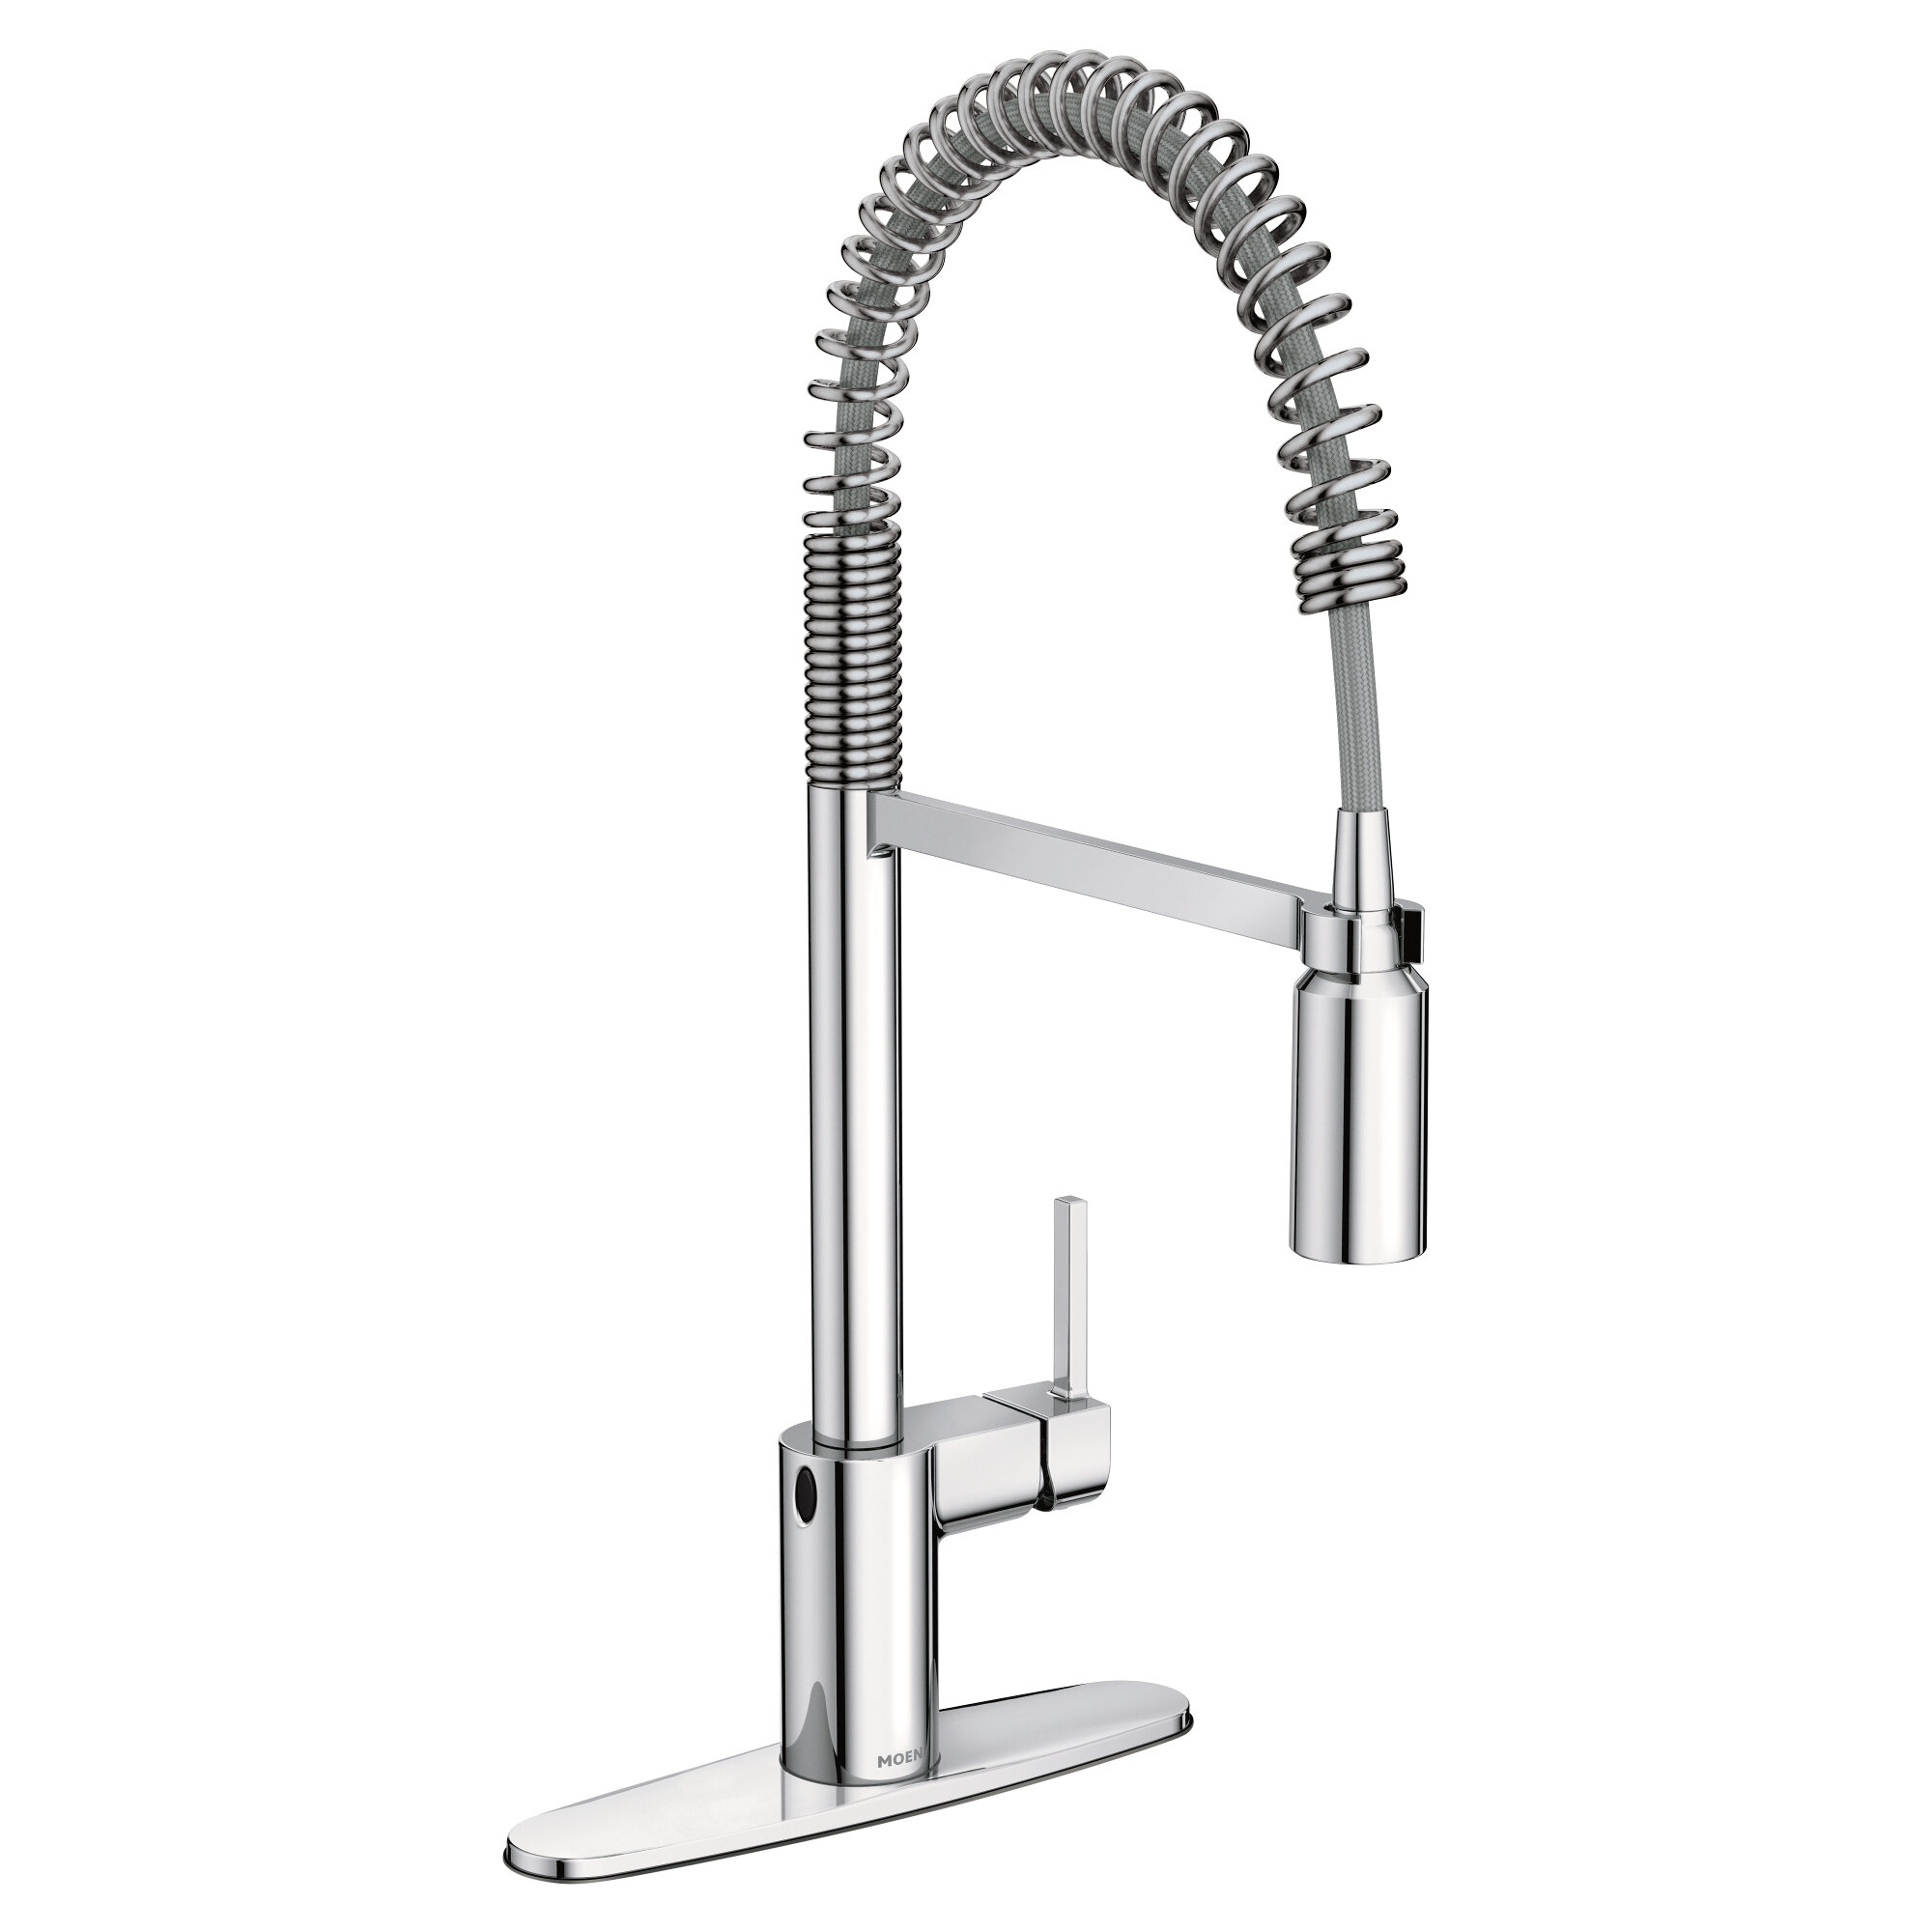 chrome brio htm water touchless p faucet hands sensor free volume